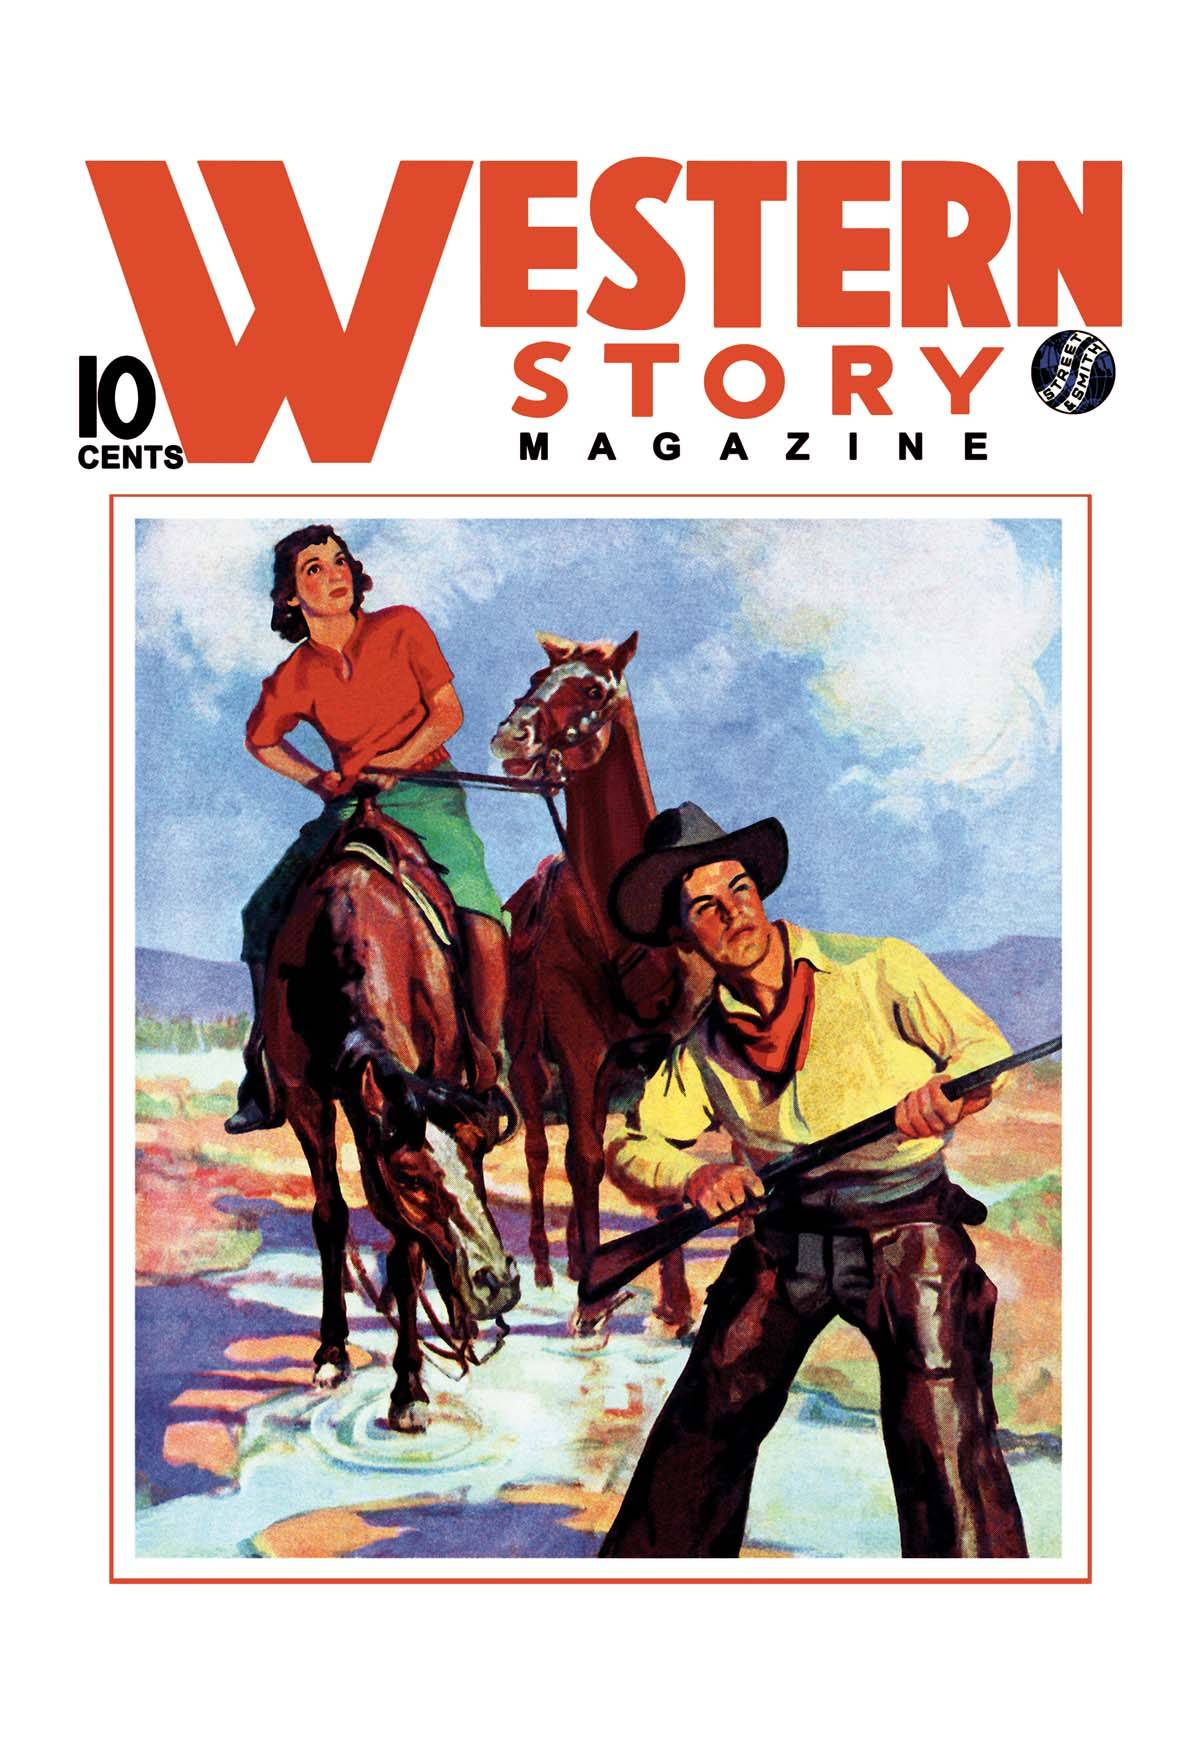 Book Cover Art Canvas : Western story magazine pair posters and canvas